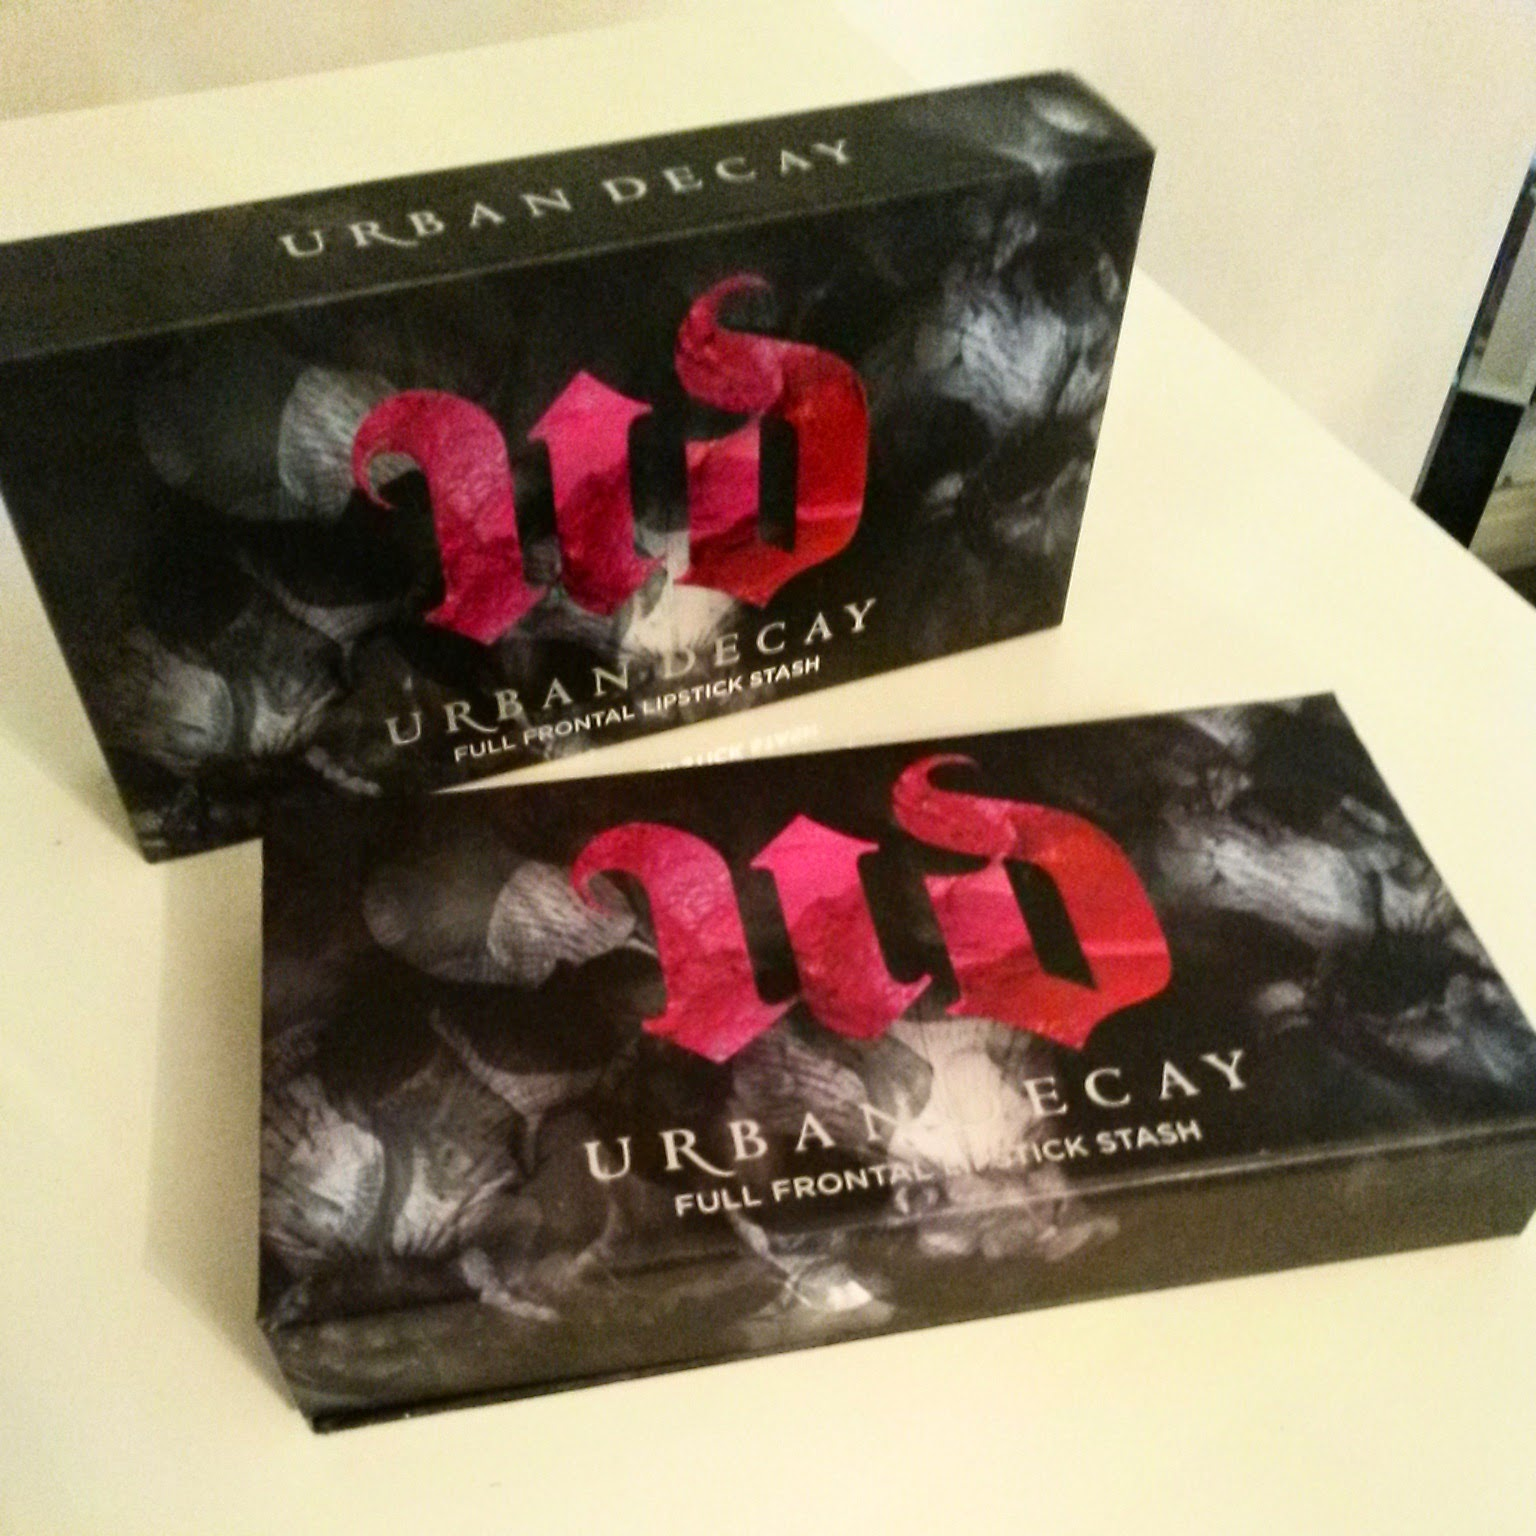 Urban Decay Full Frontal Lipstick Stash Review